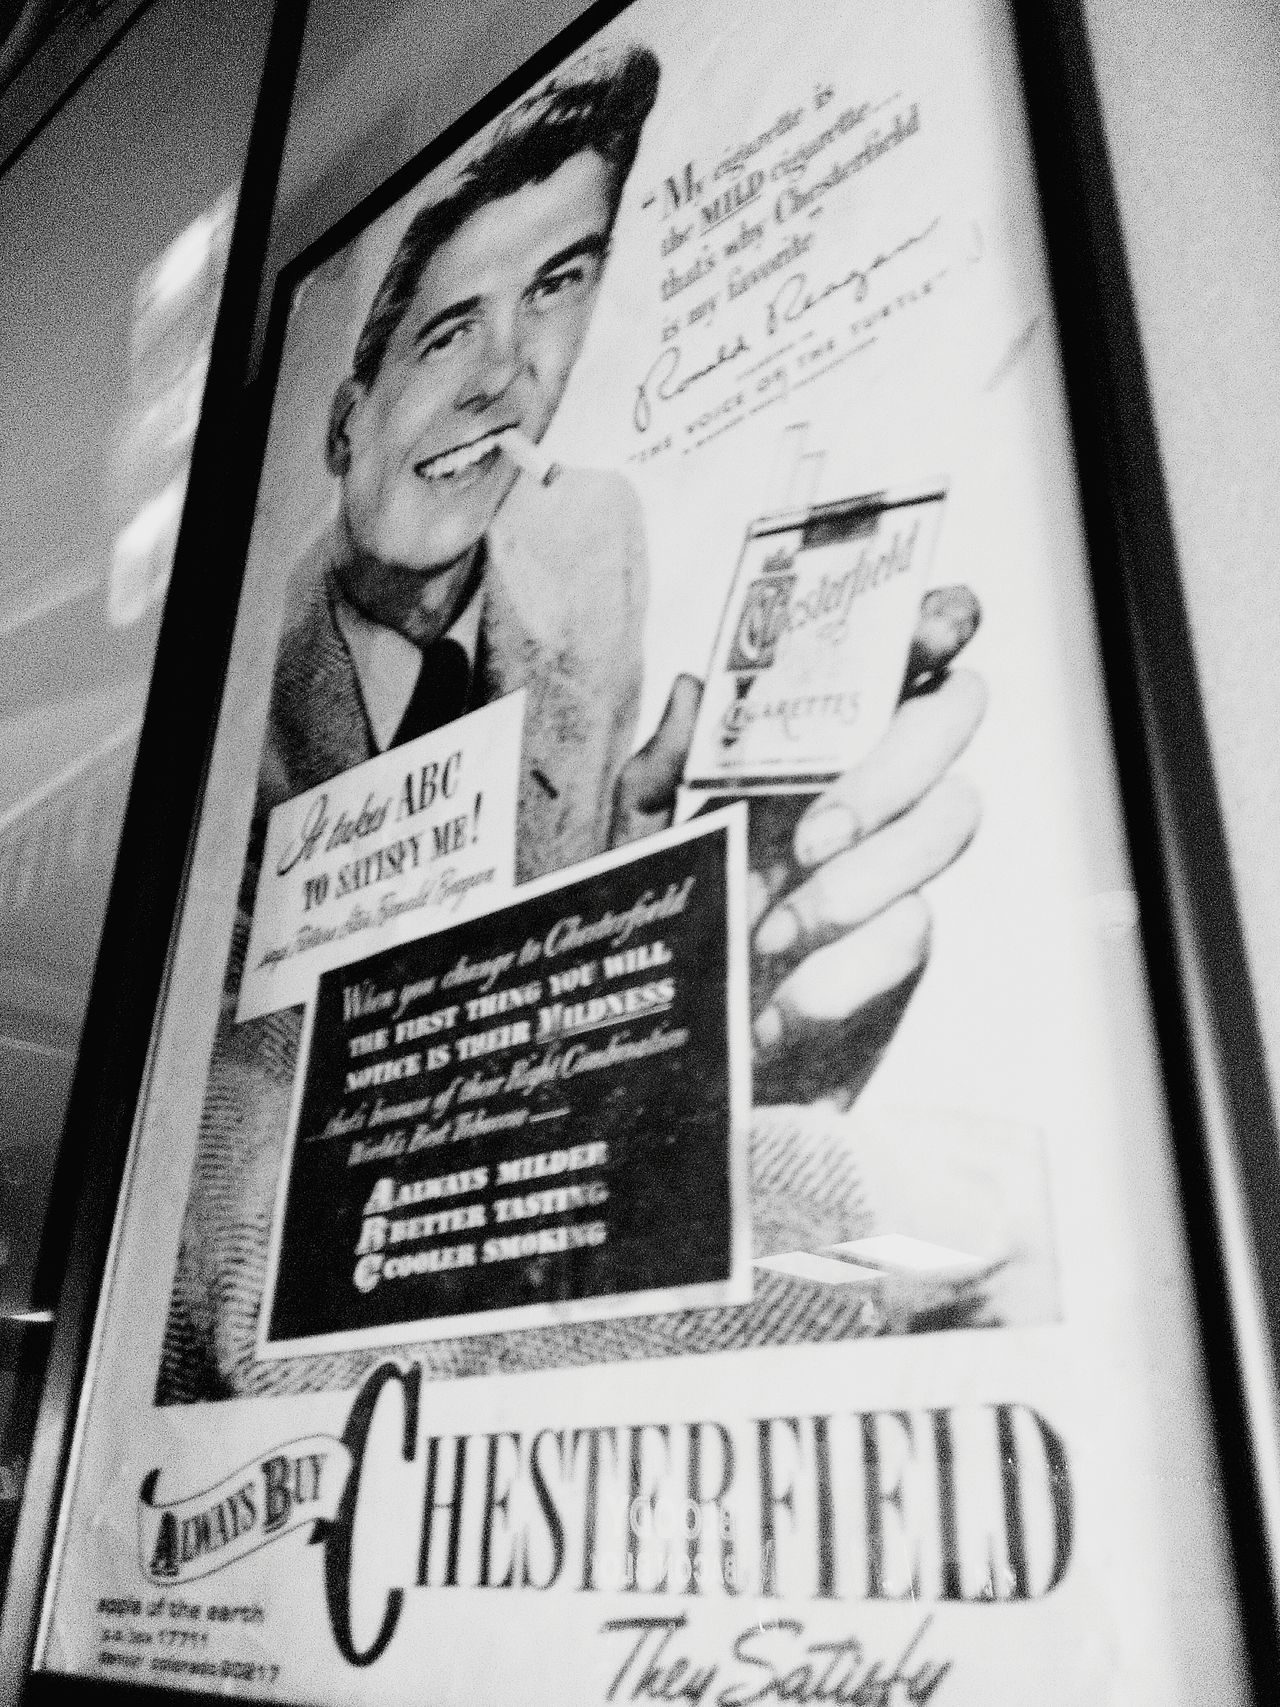 Vintage Vintage Advertising Ronald Reagan  Ciggarette Cigarette Break Cigarette Time Ciggarettes Cigarlovers Fine Art Photography Blackandwhite Black & White Black And White Photography Black And White Blackandwhite Photography HighContrastPhotography Advertisement Posters Advertising Photography Vintage Style Vintage Shopping Advertising Advertisement Ads Ads Photography Vintage Collection Chesterfield chesterfields